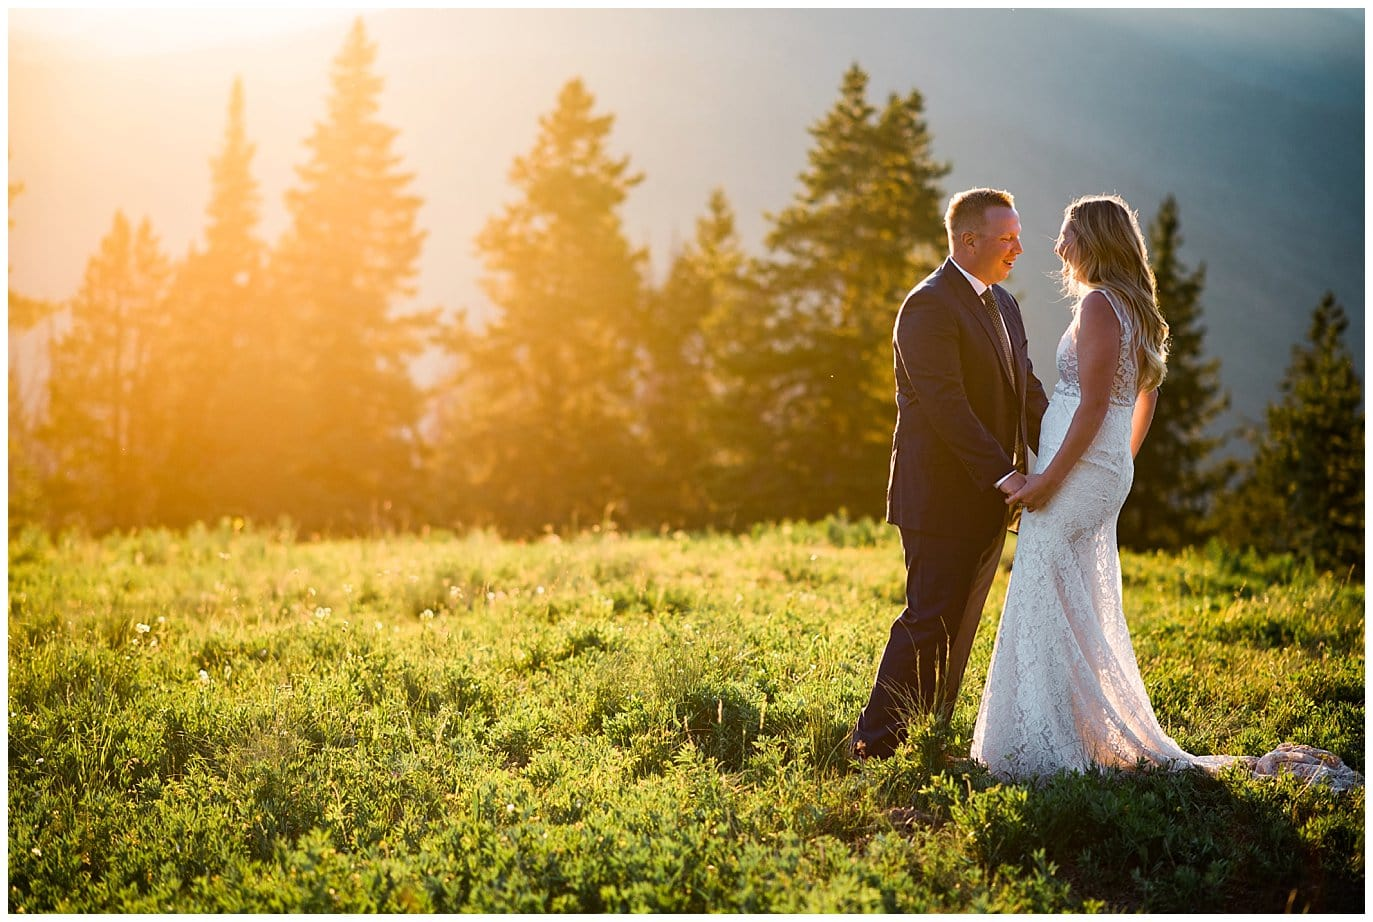 beautiful sunset photos of bride and groom after their mountaintop summer wedding by vail wedding photographer Jennie Crate